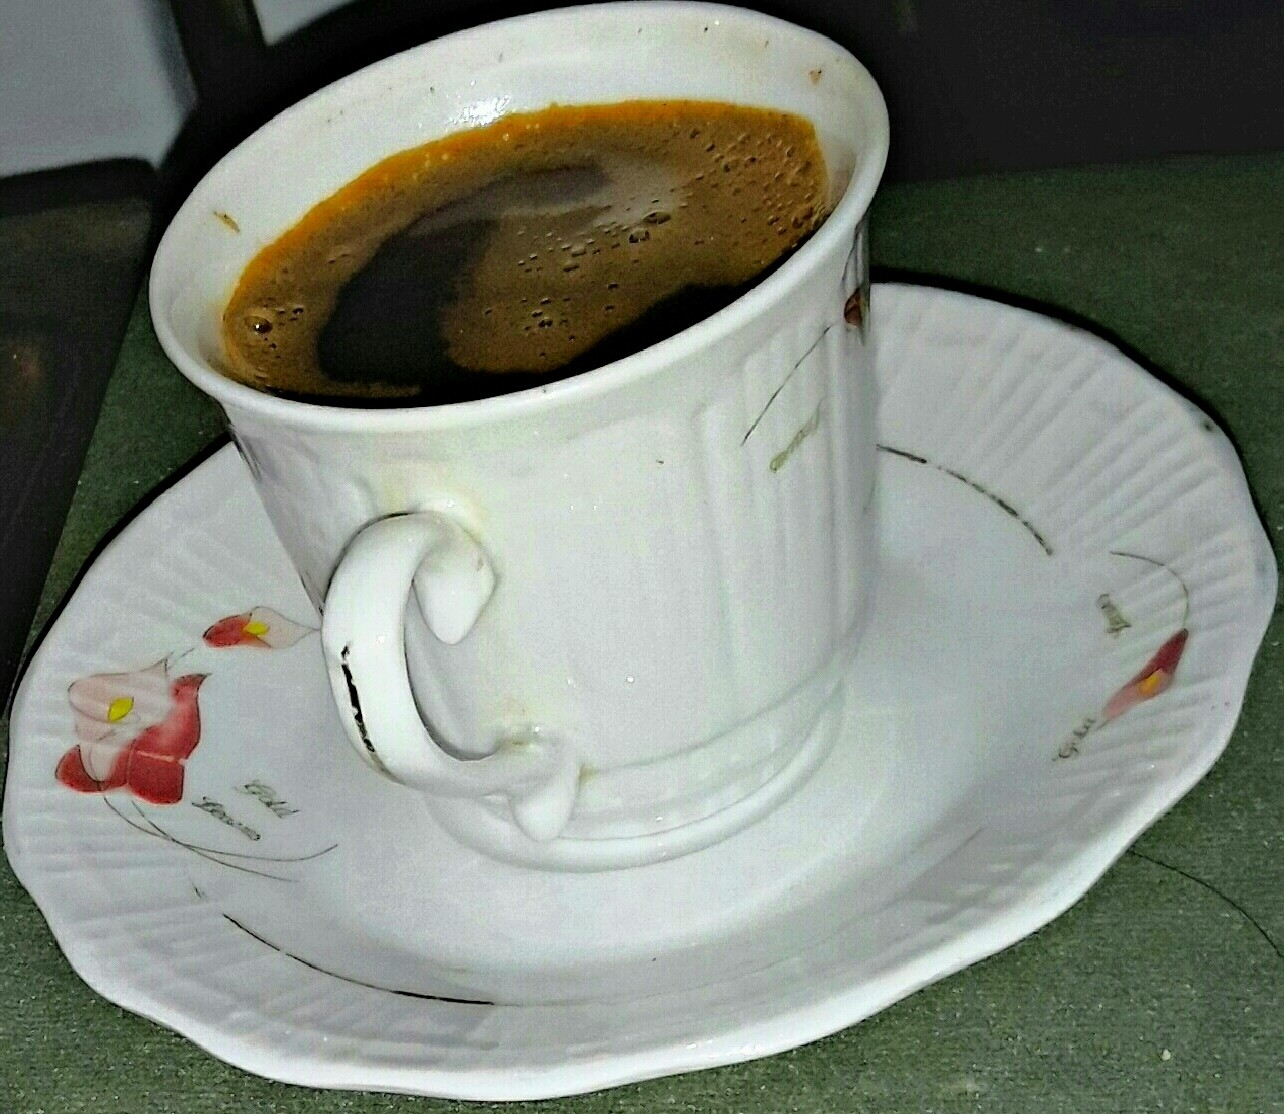 The best coffe in the world - Turkish coffe!